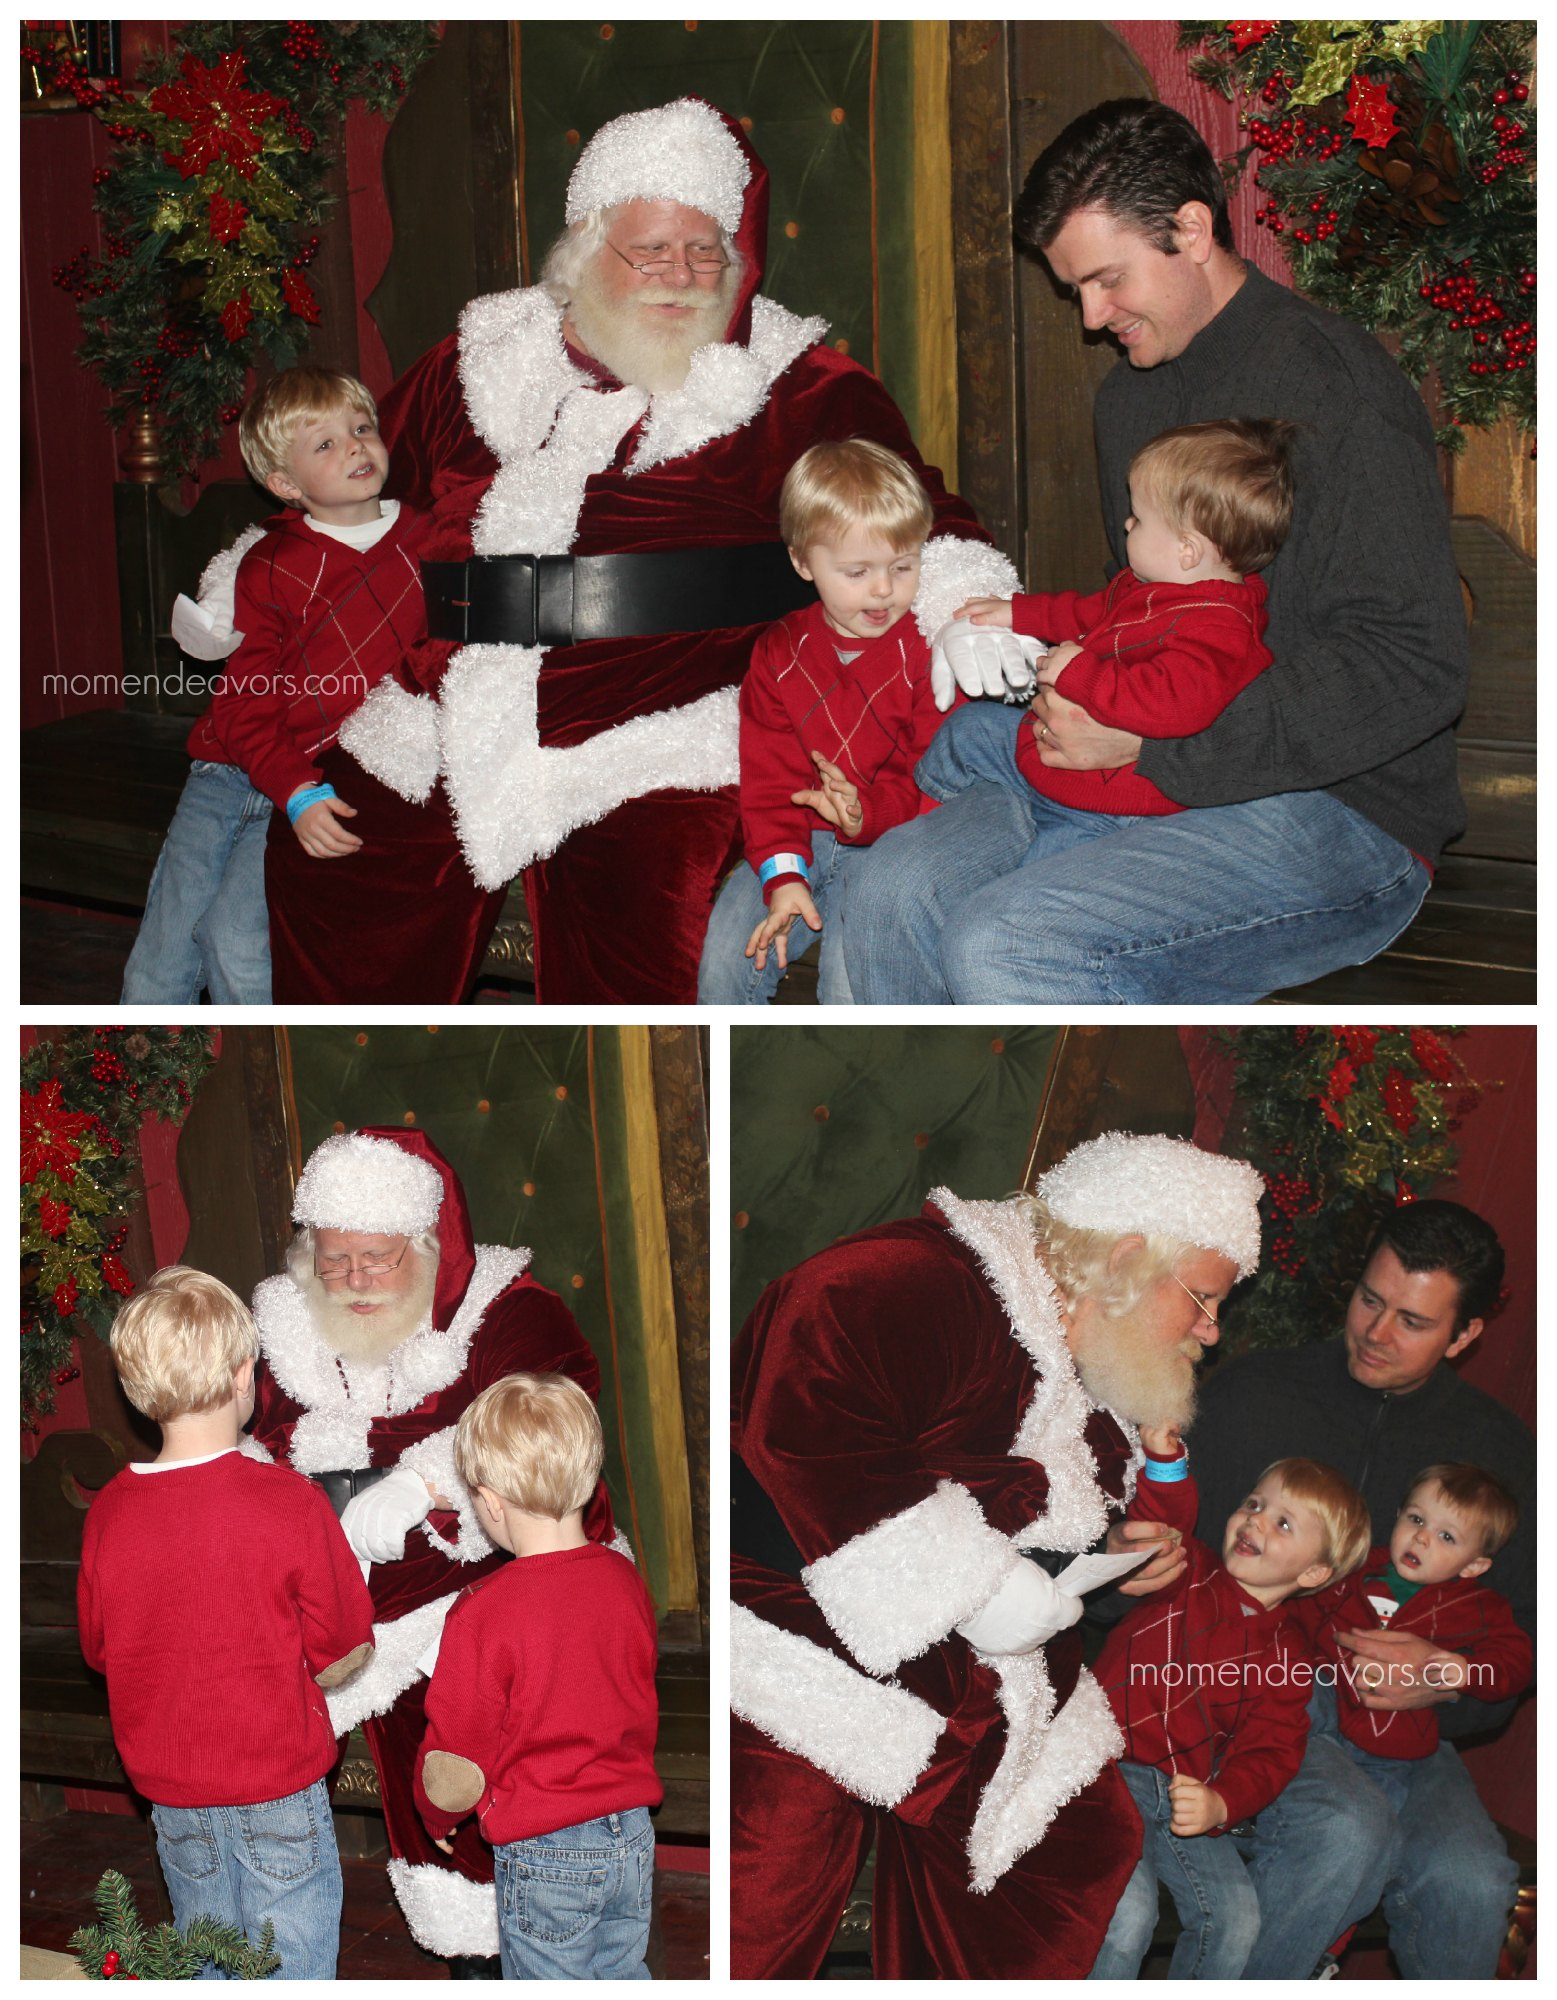 Meeting Santa at the North Pole